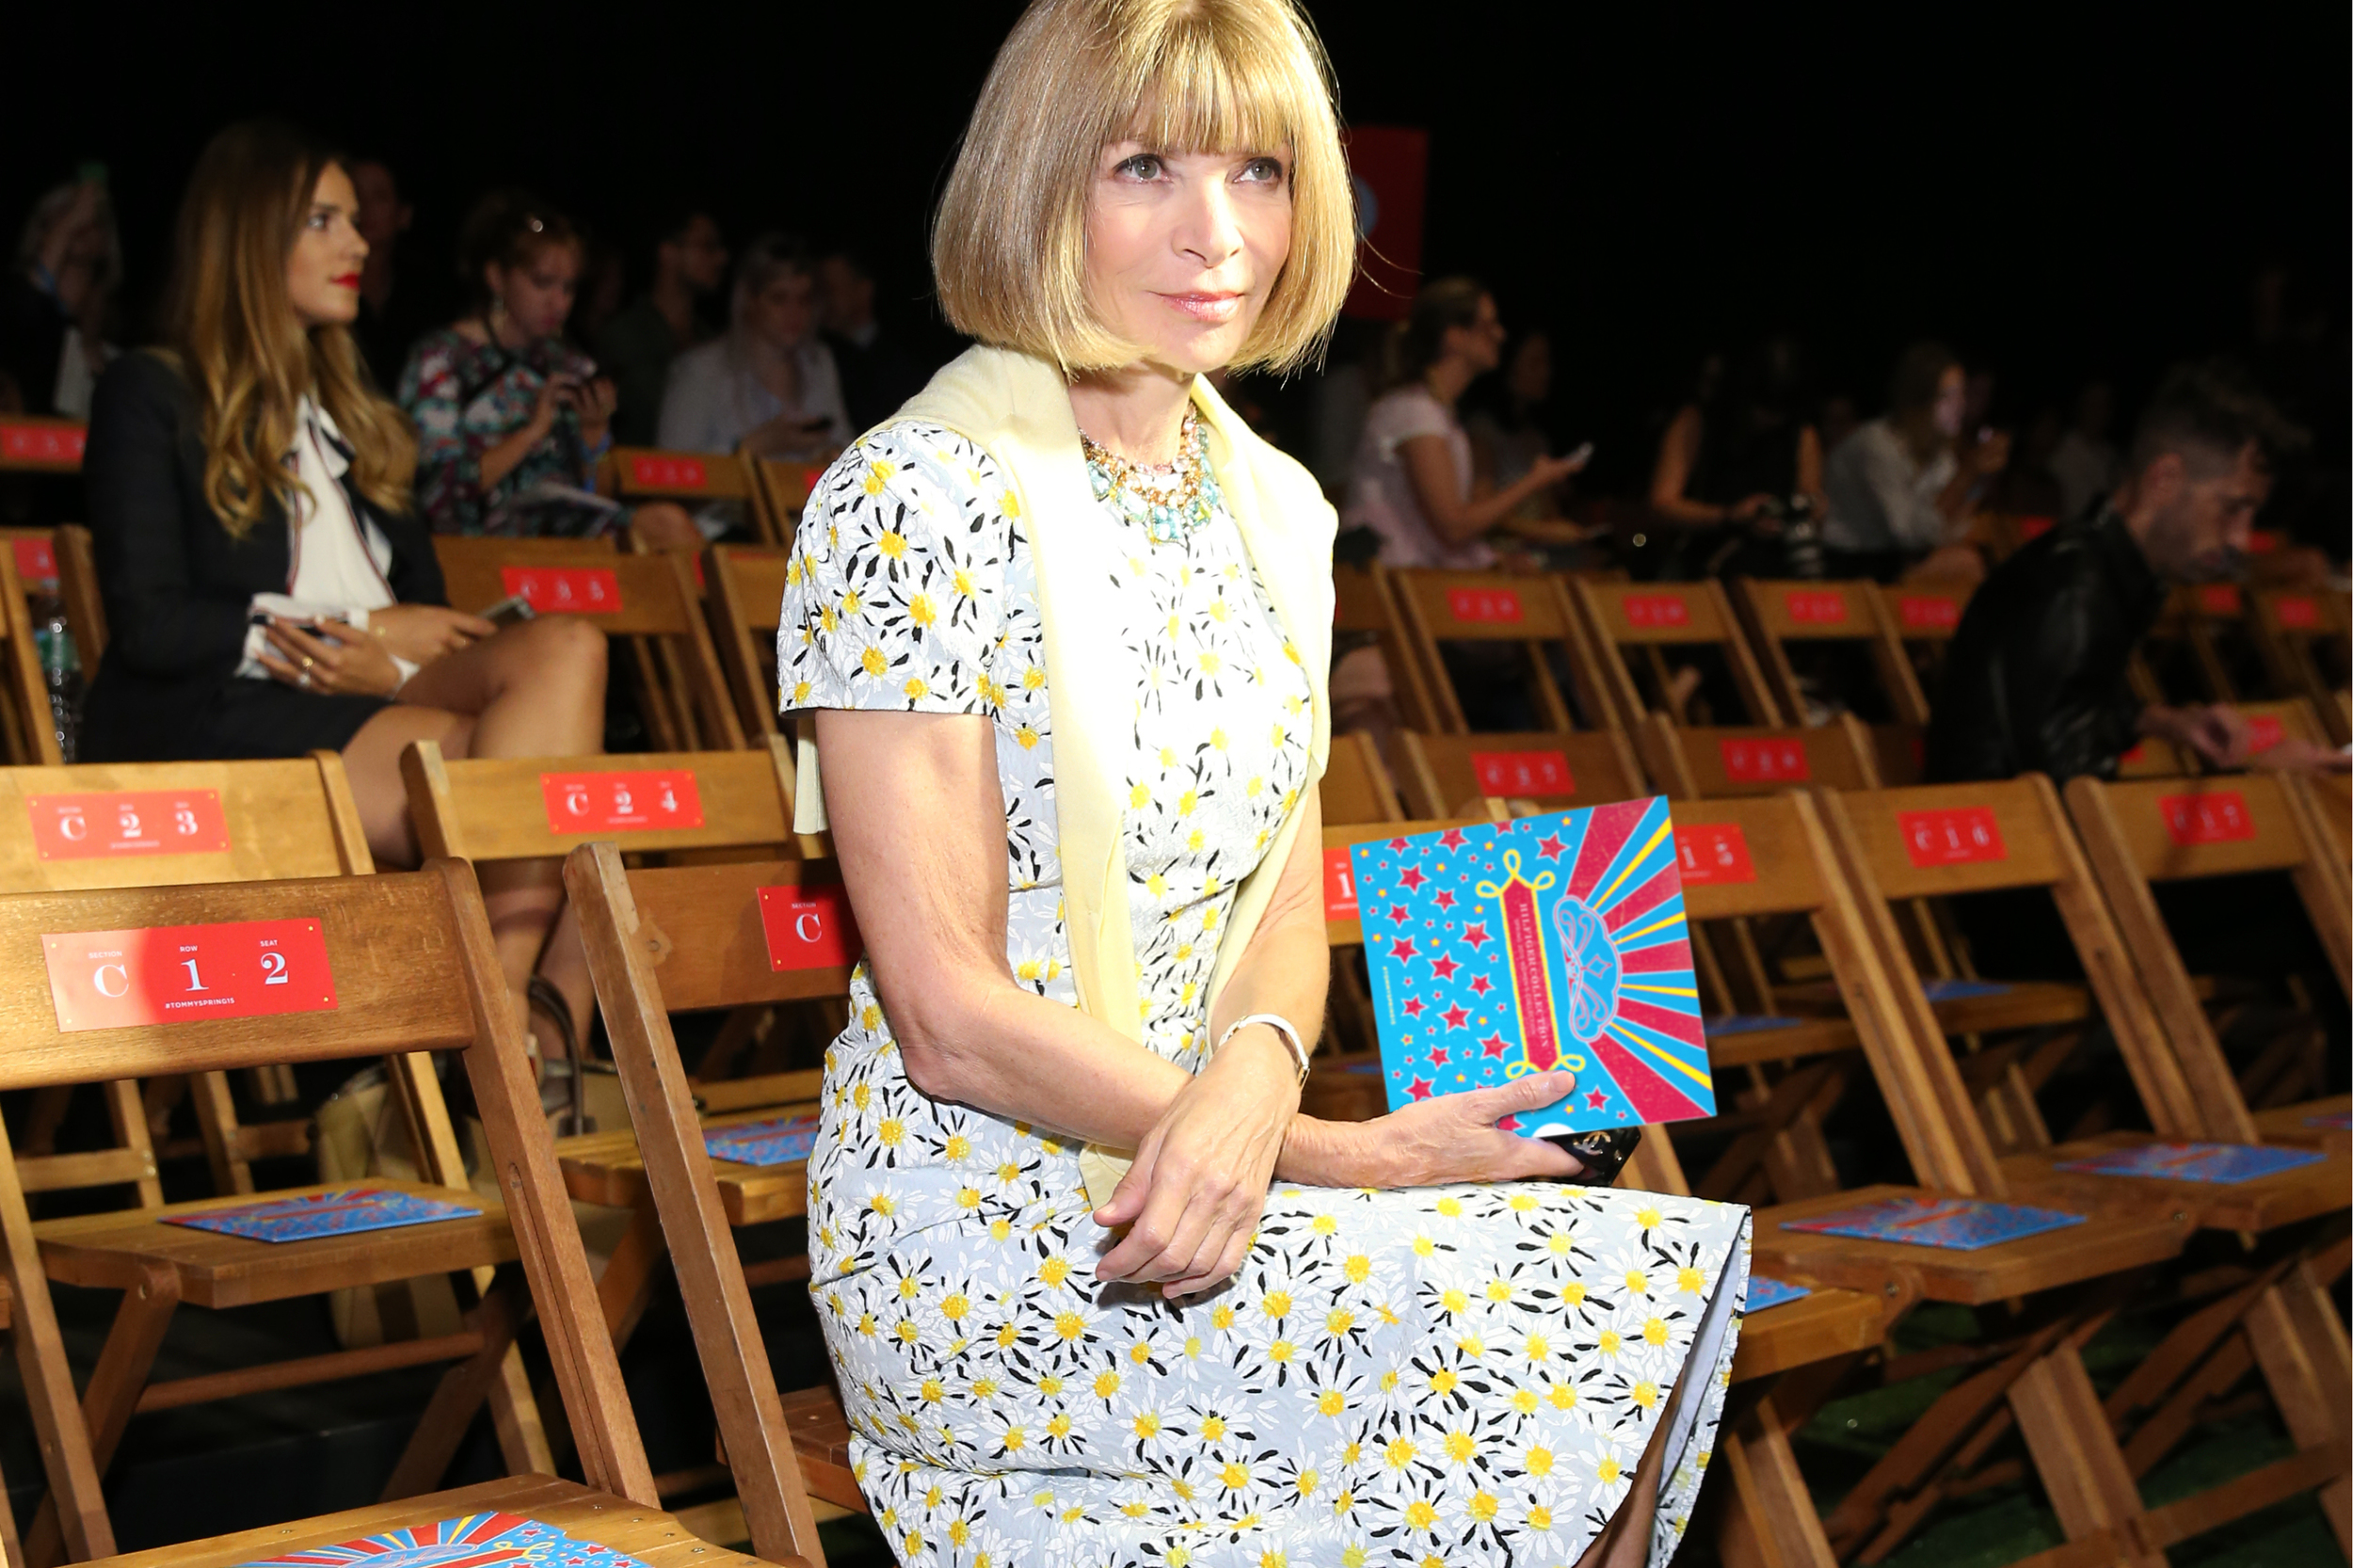 Anna Wintour  compliments the design in her floral dress.